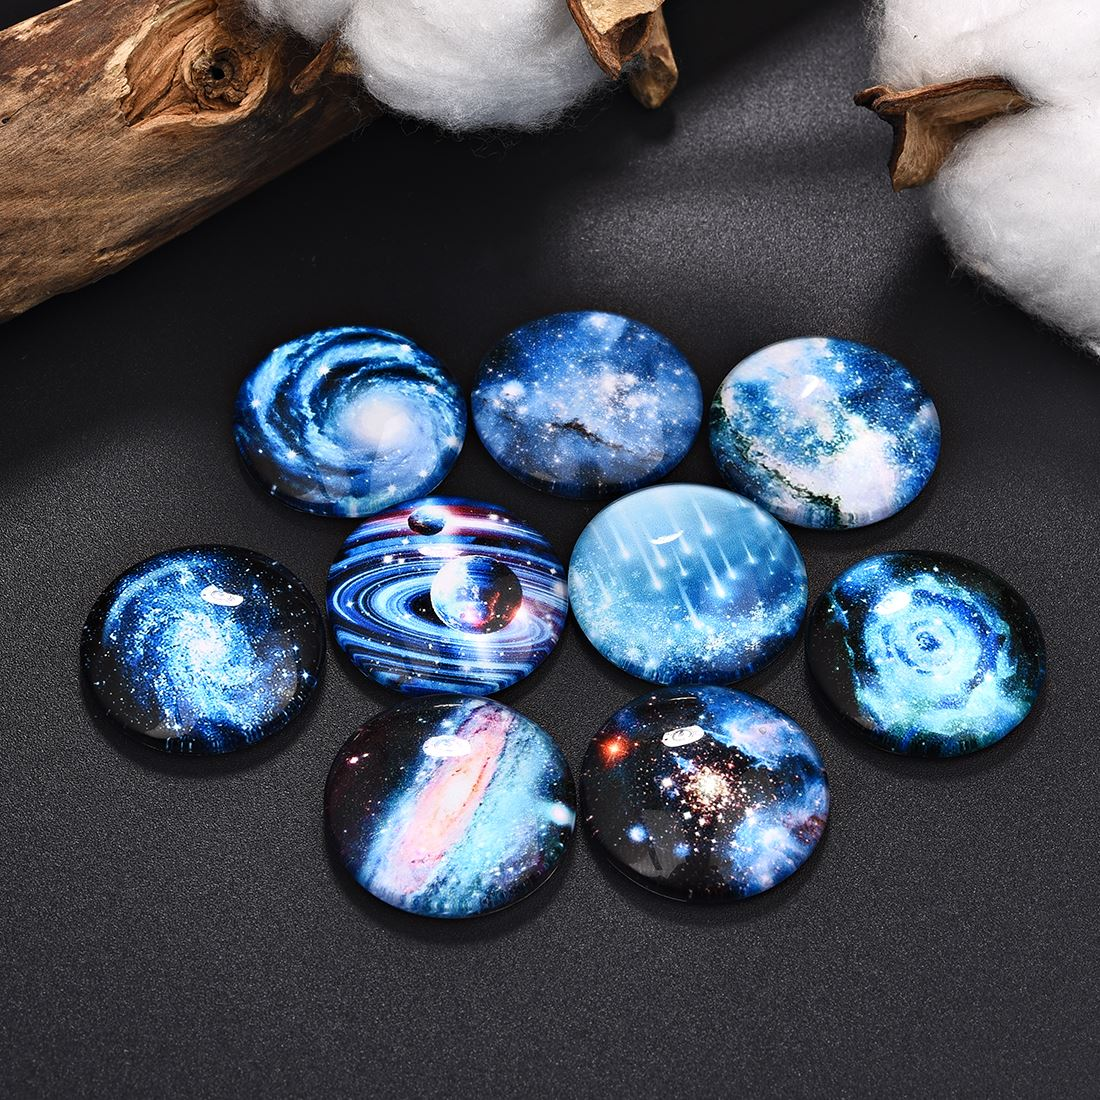 50Pcs Starry Sky Pattern Flat Glass Cabochons Cameo Jewelry Making Fit 12mm 20mm 25mm Blank Base Setting Earrings Necklace DIY